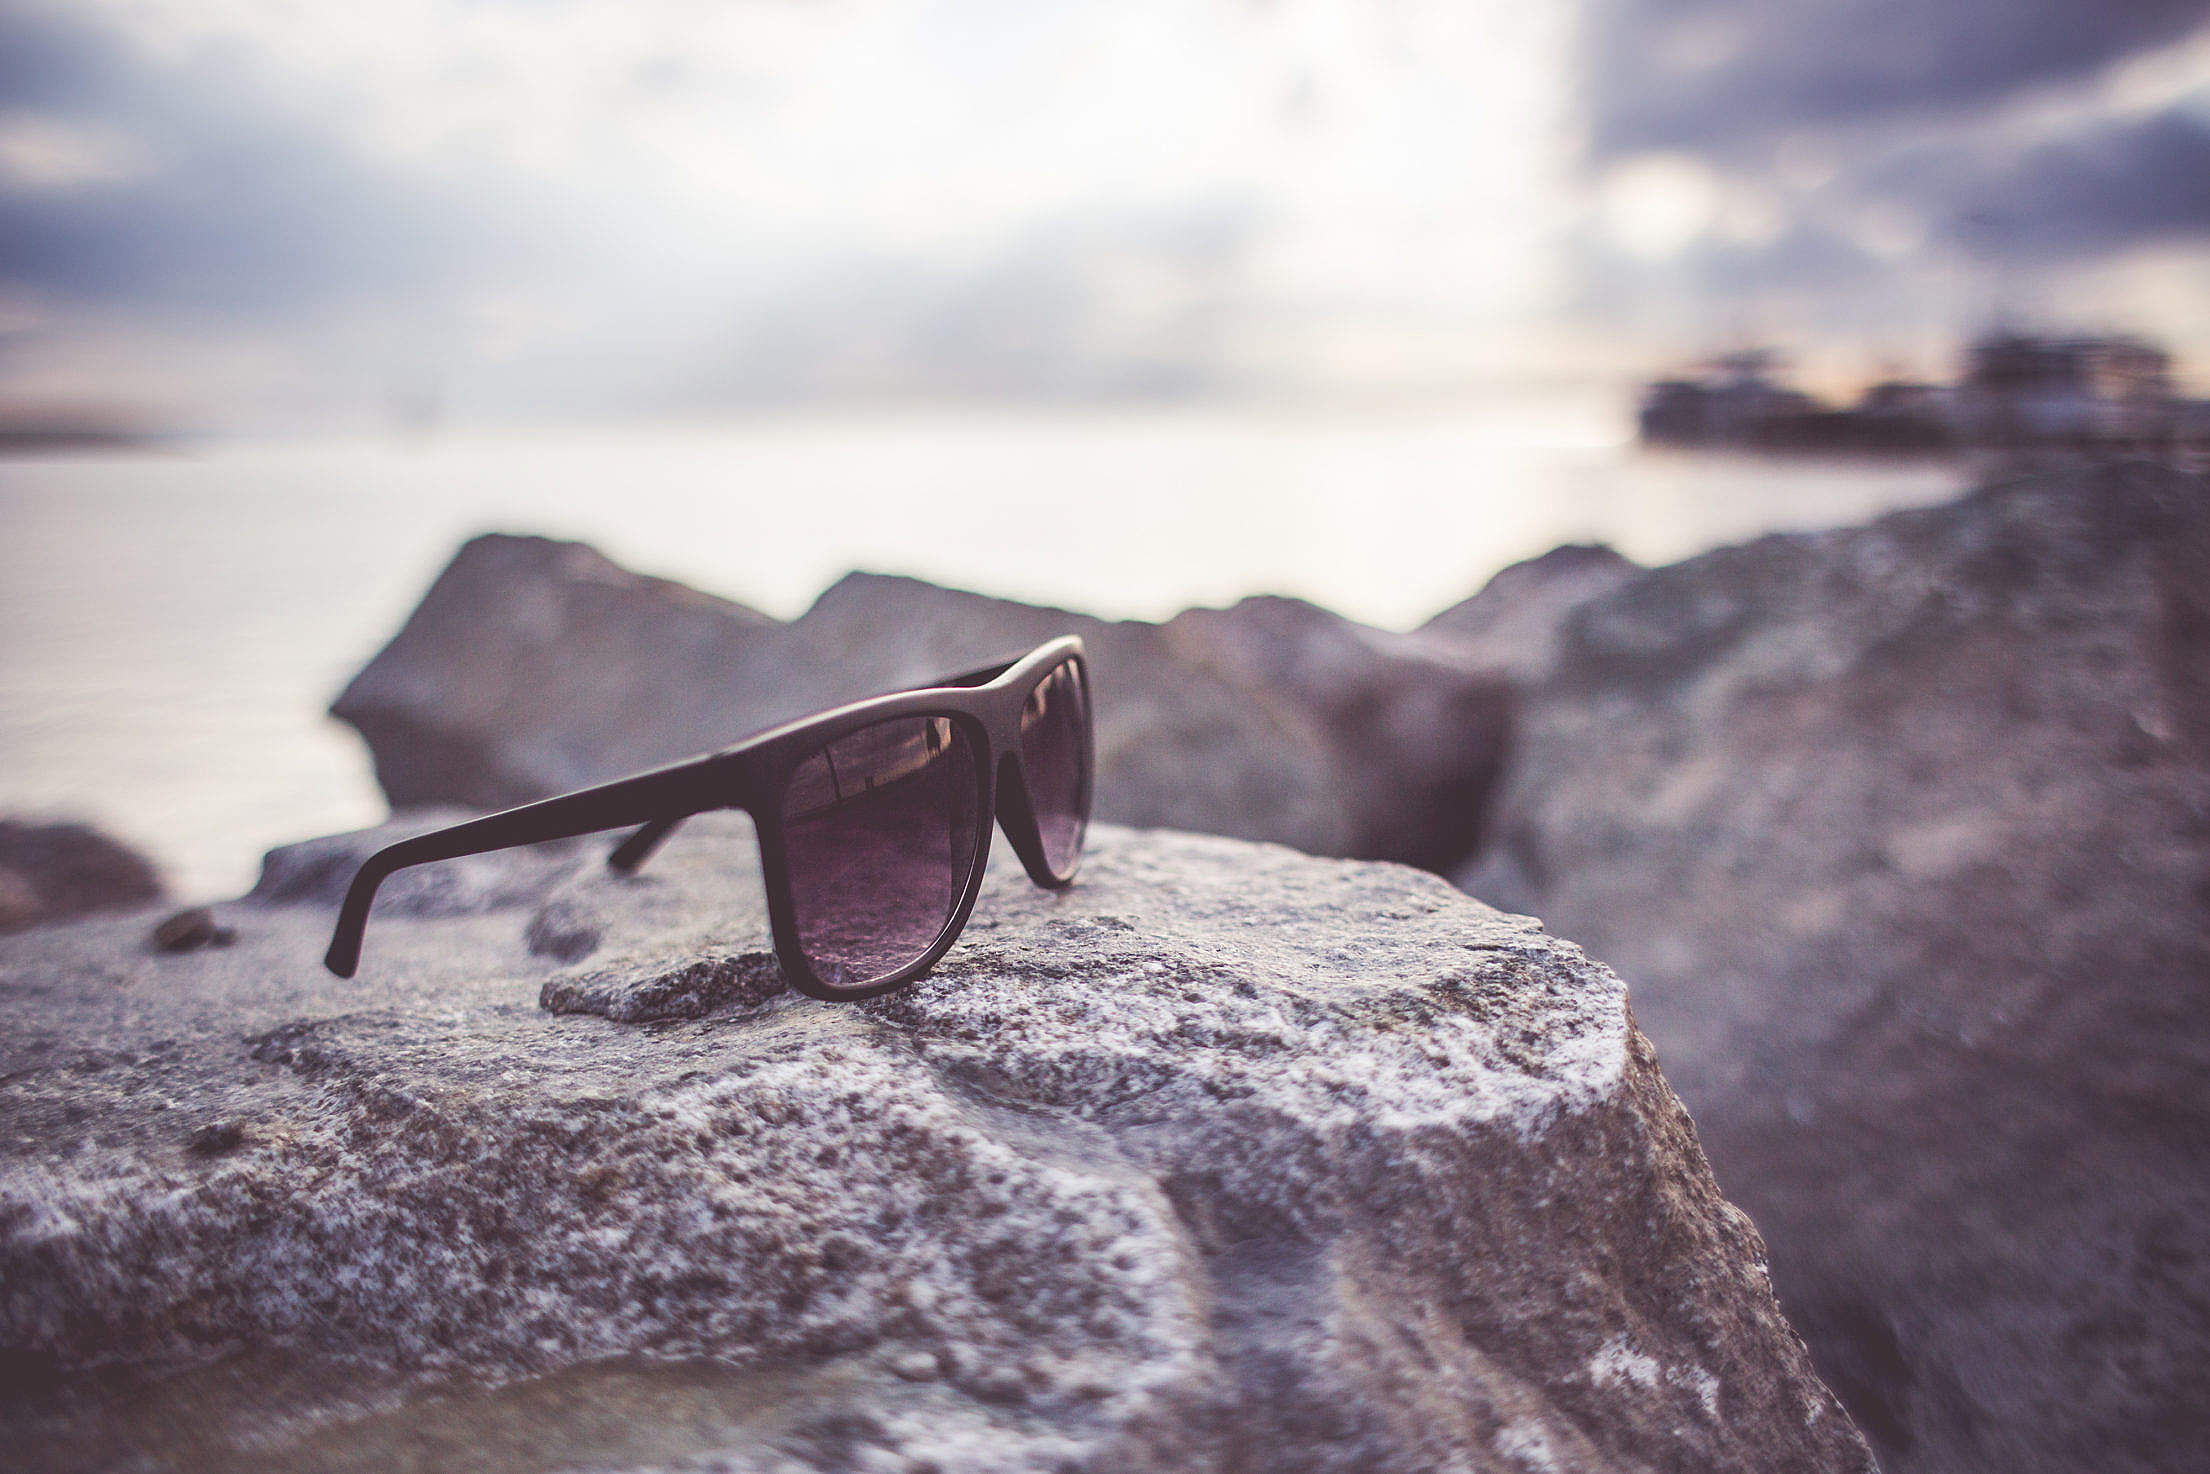 Sunglasses on a Rock Free Stock Photo